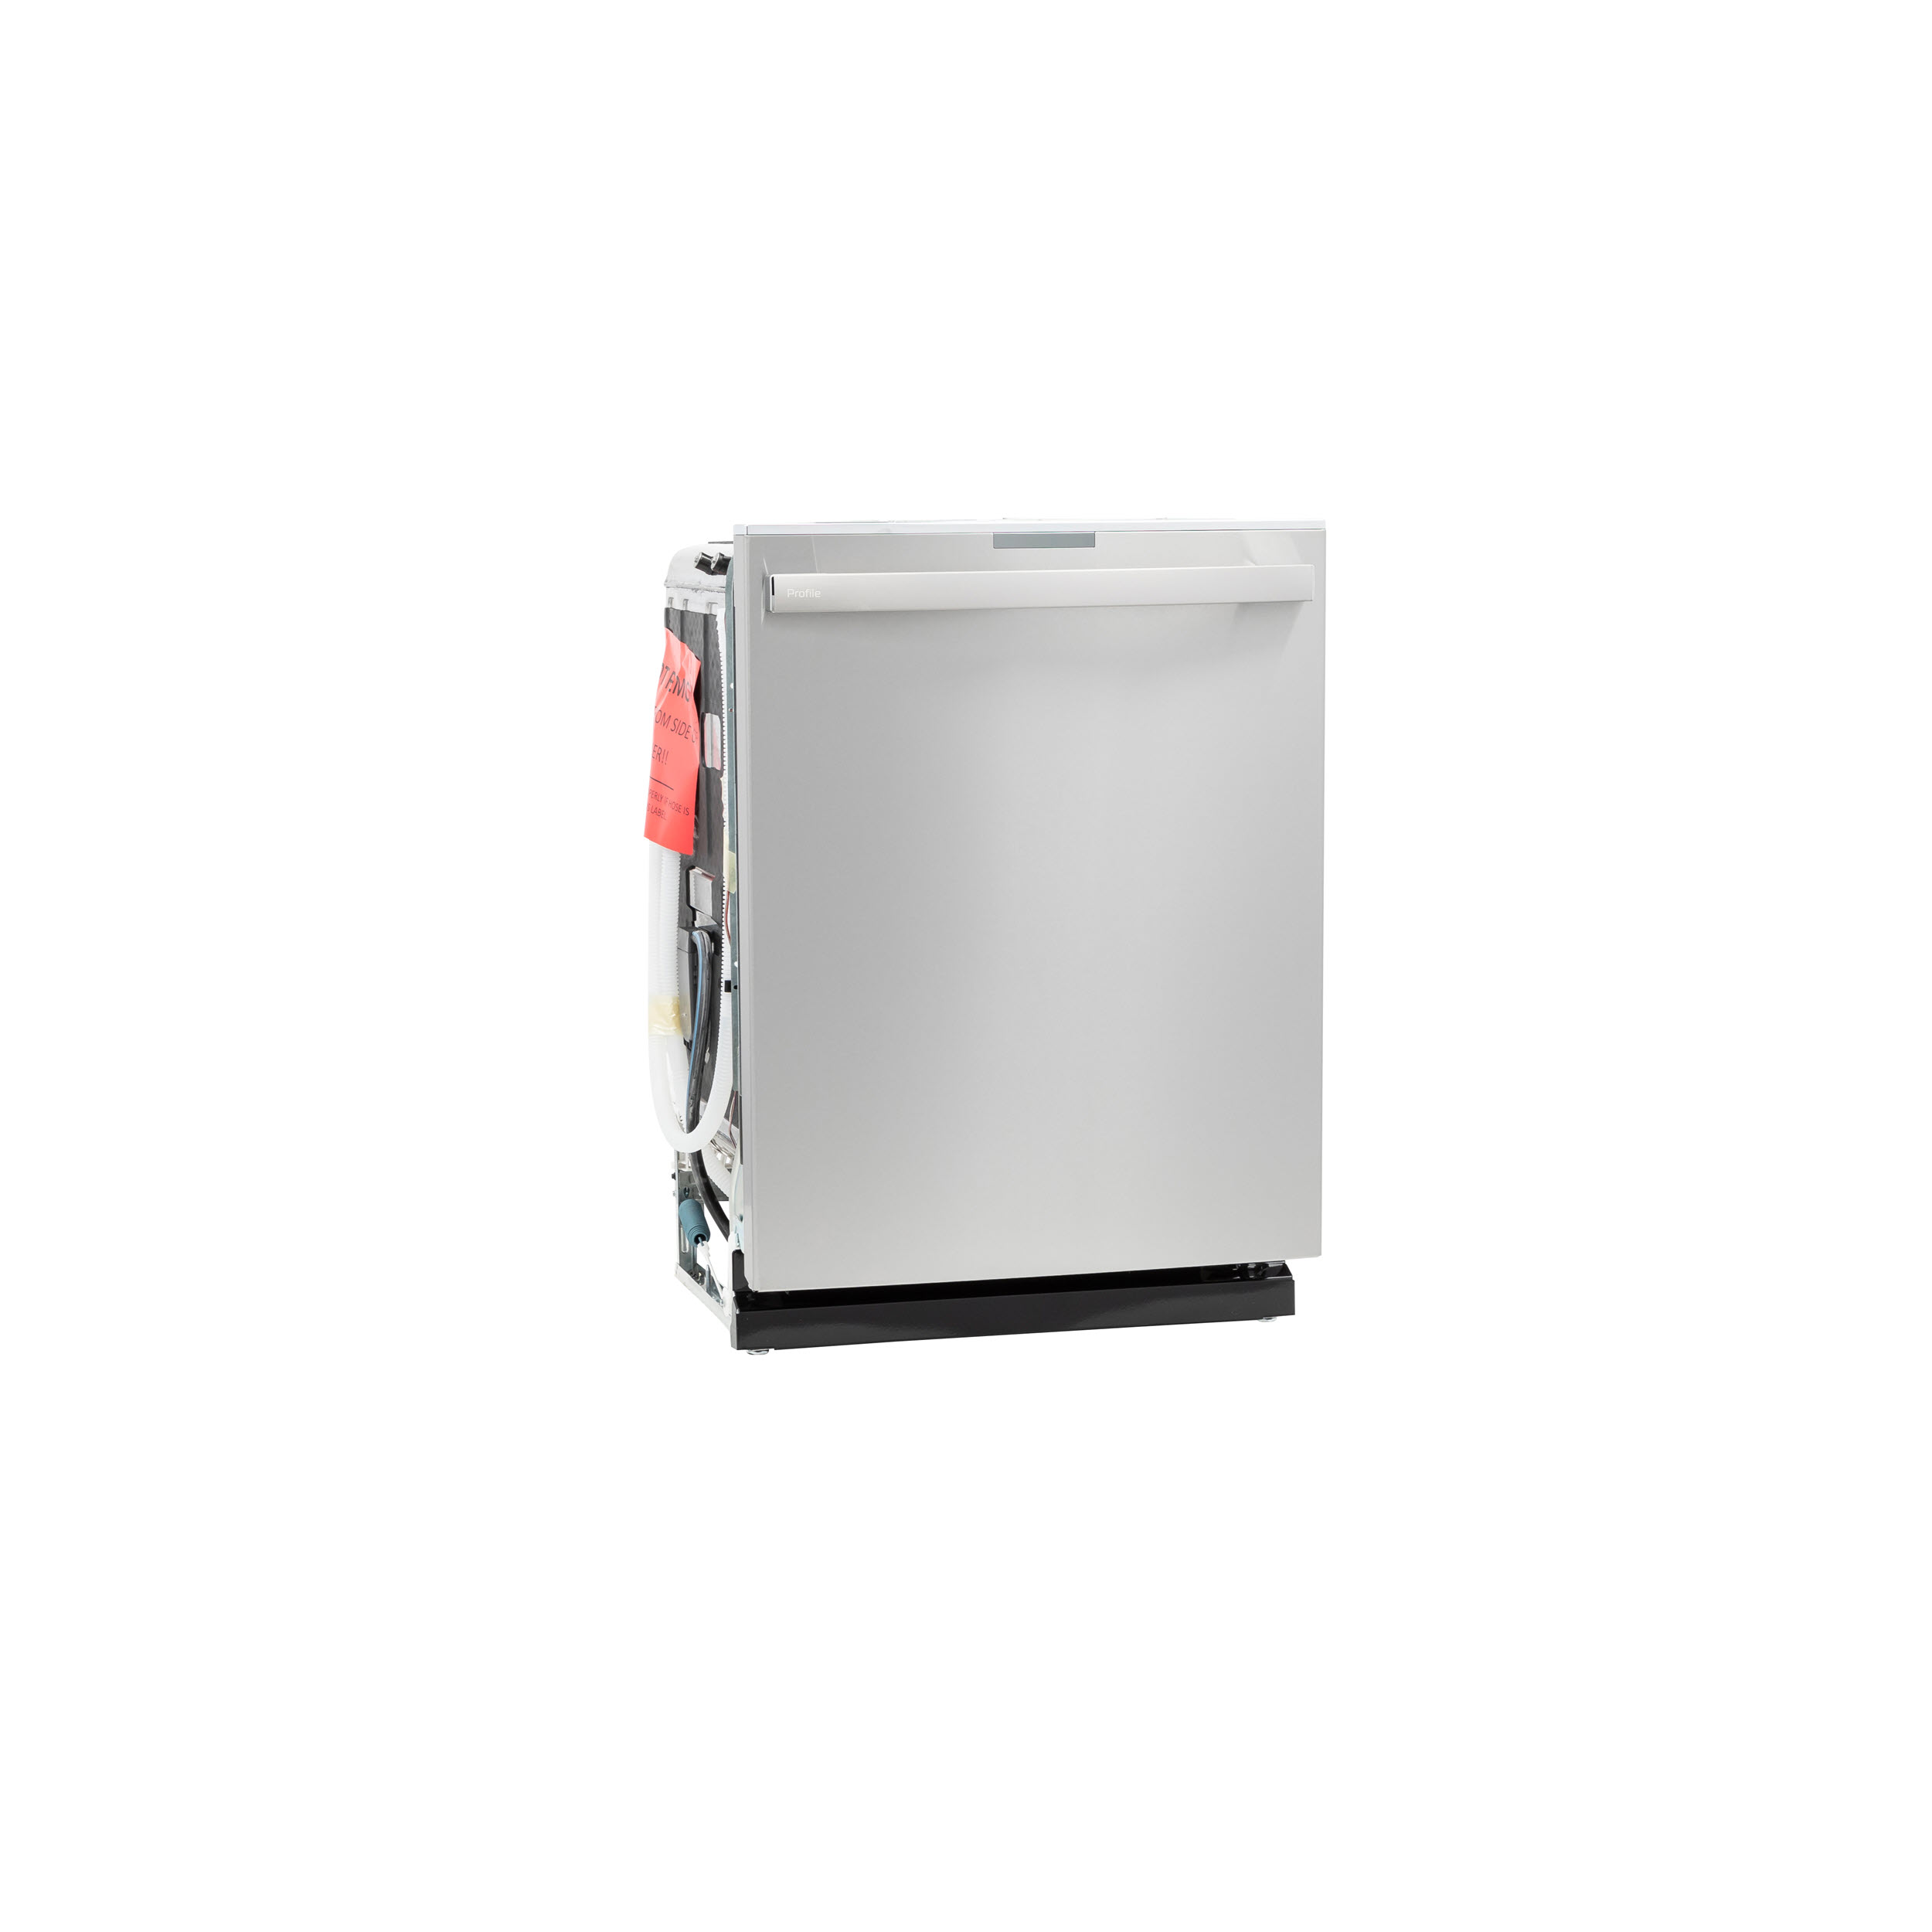 Model: PDT715SYNFS | GE Profile GE Profile™ Fingerprint Resistant Top Control with Stainless Steel Interior Dishwasher with Sanitize Cycle & Dry Boost with Fan Assist